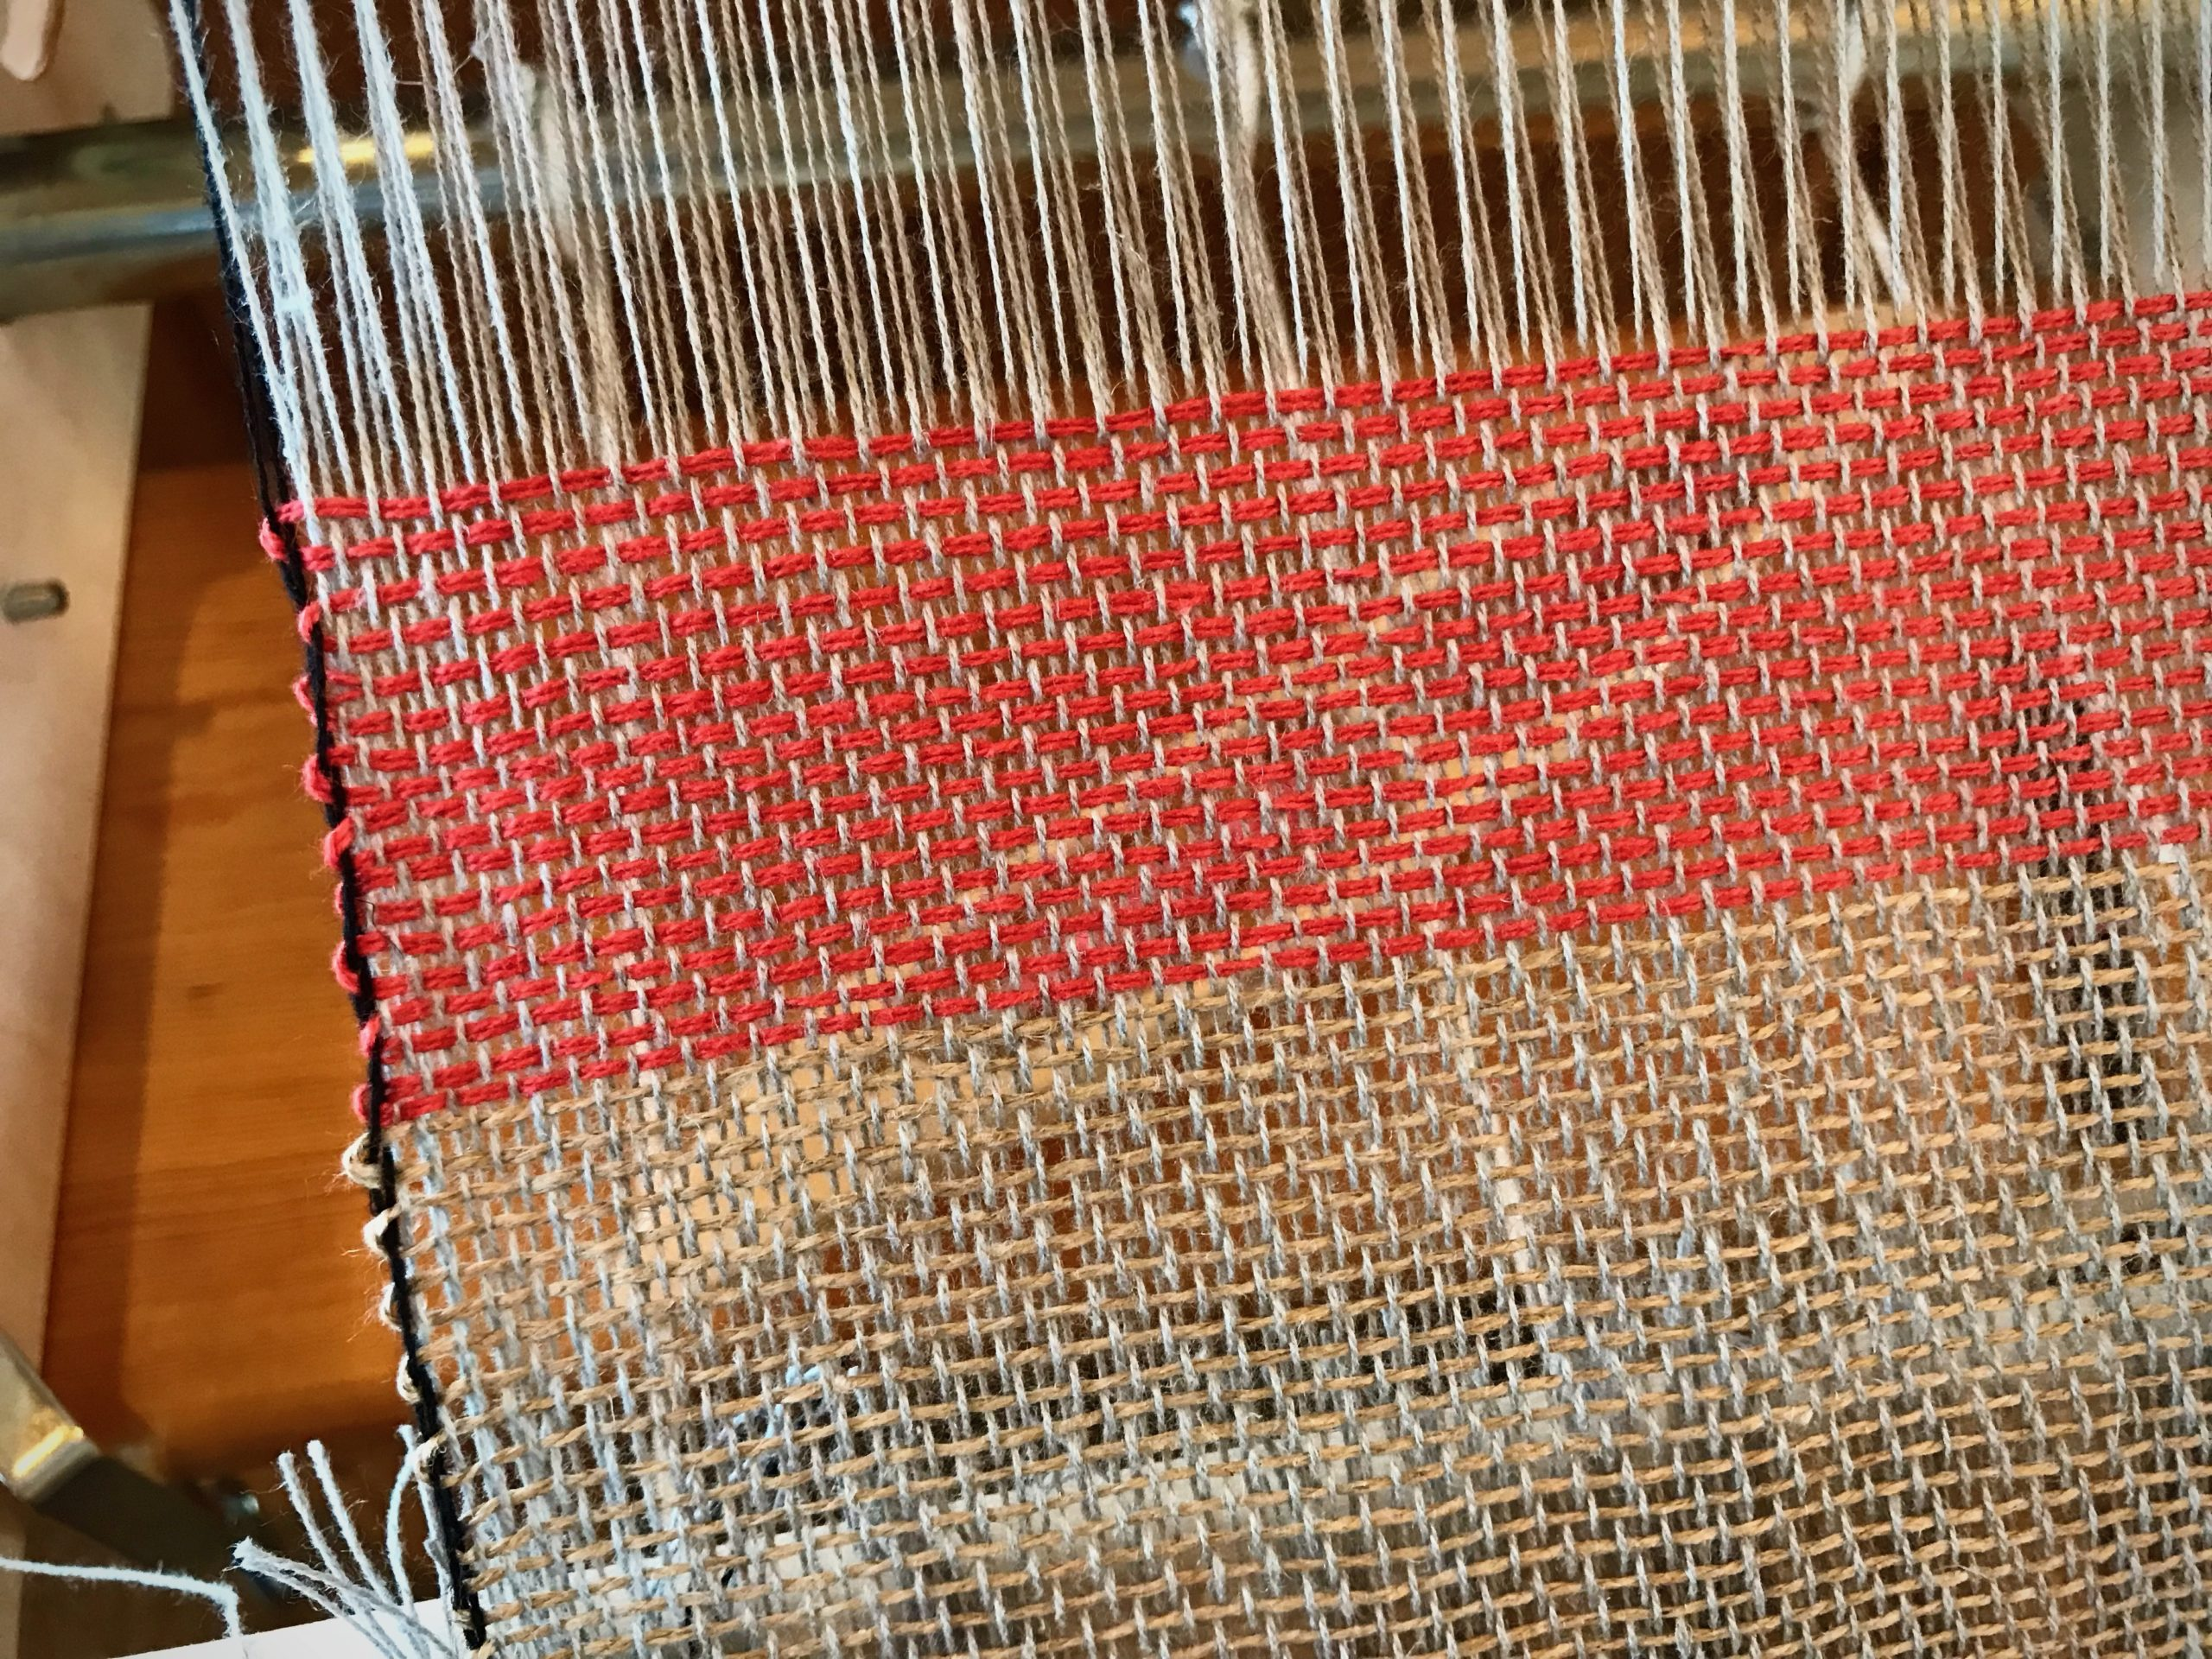 Weaving with 2 heddles on rigid heddle loom.